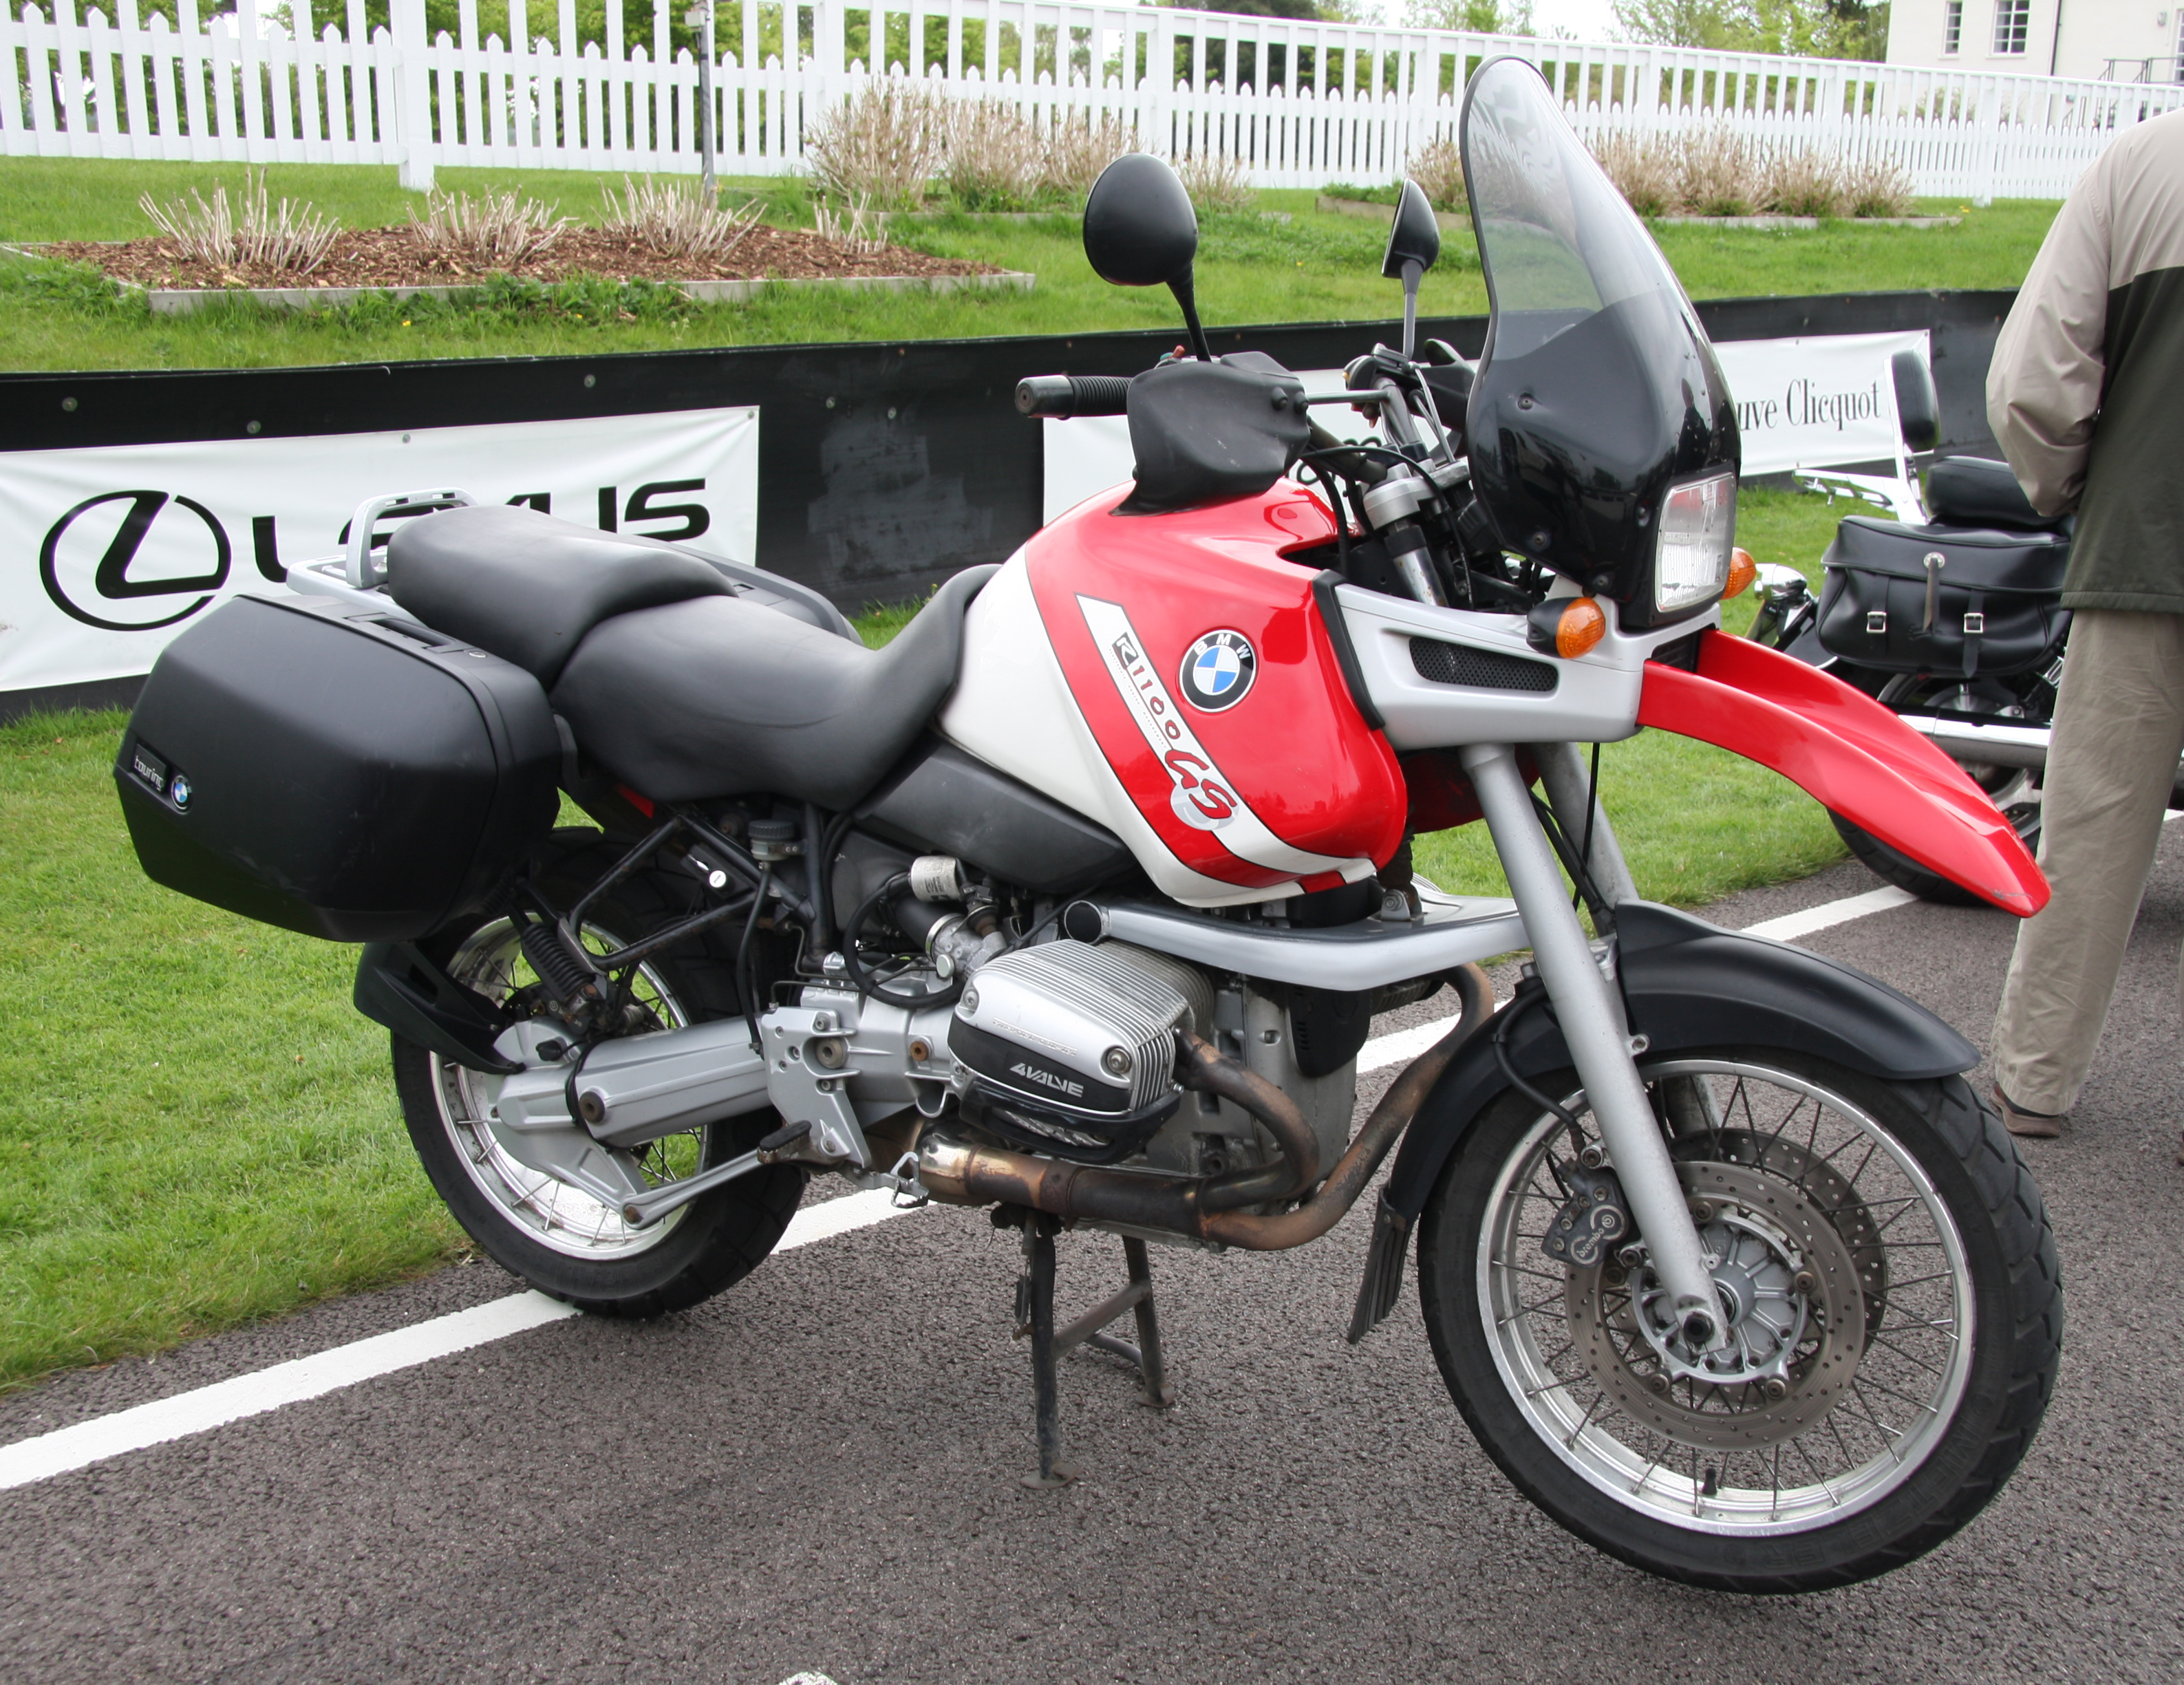 BMW R1100GS 1998 images #6327